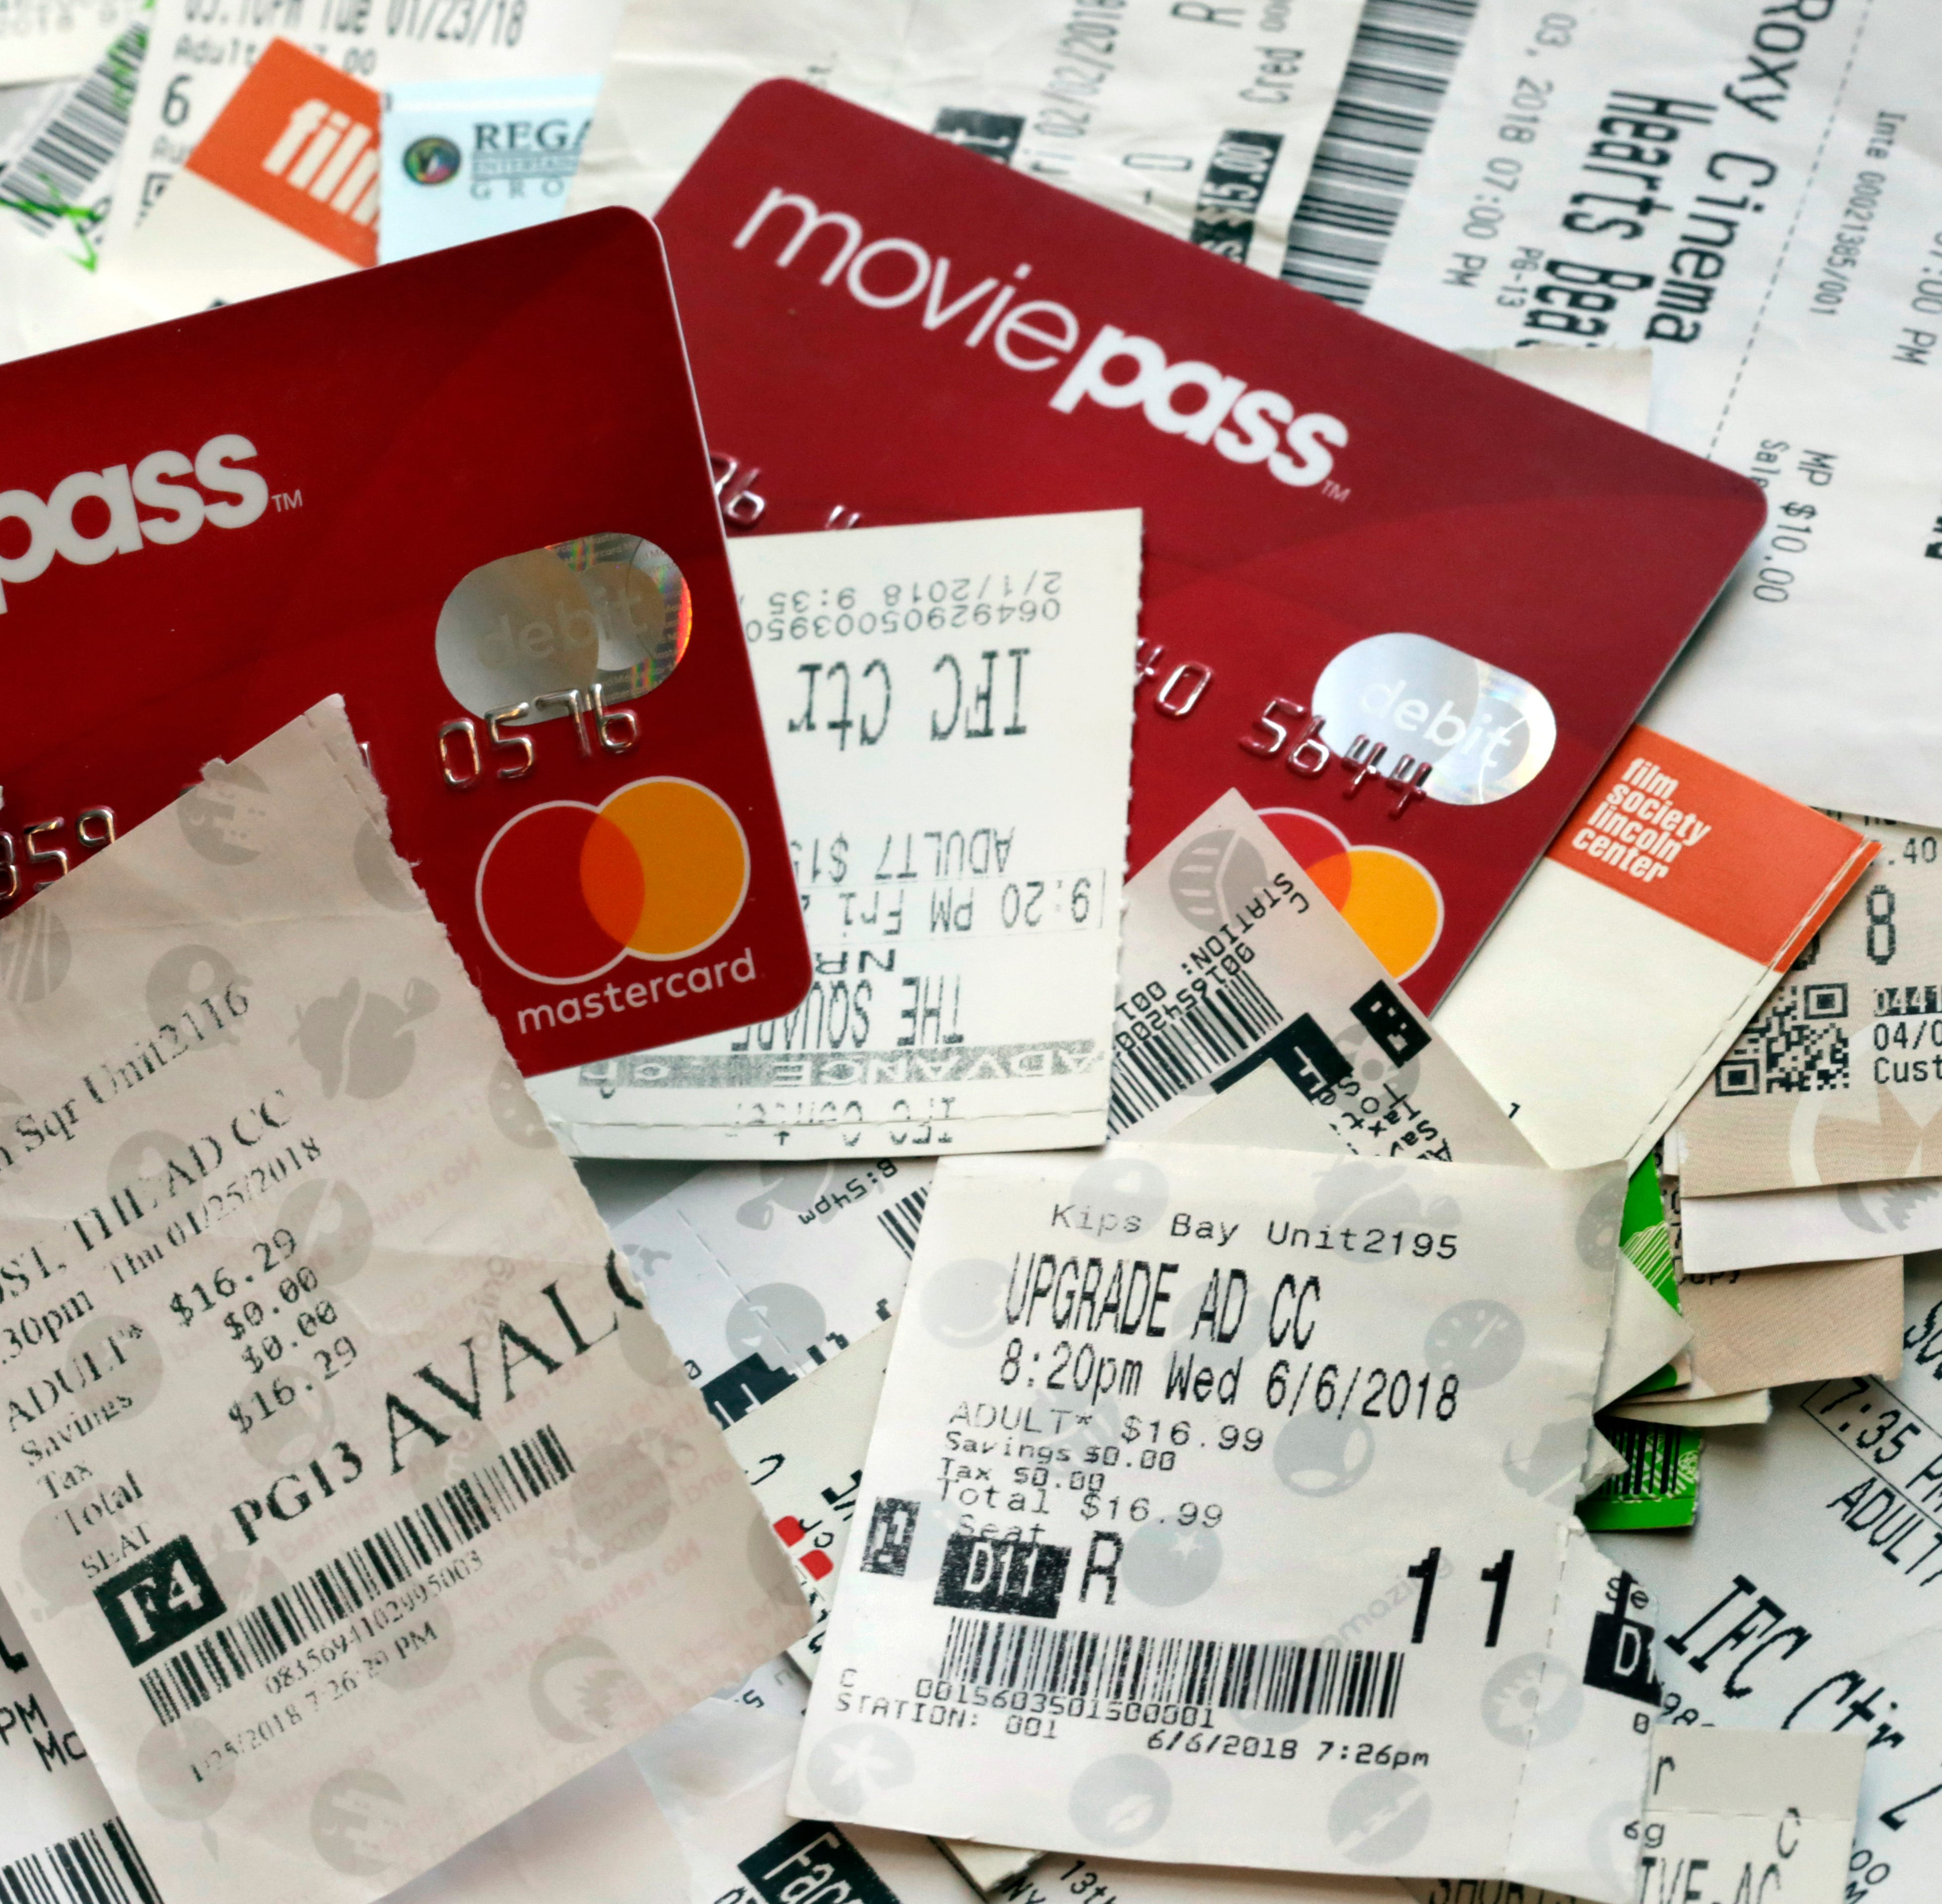 This Aug. 23, 2018, file photo shows Movie Pass debit cards and used movie tickets in New York. The company that runs the beleaguered MoviePass, a discount service for movie tickets at theaters, is being investigated by the New York Attorney General on allegations it misled investors.